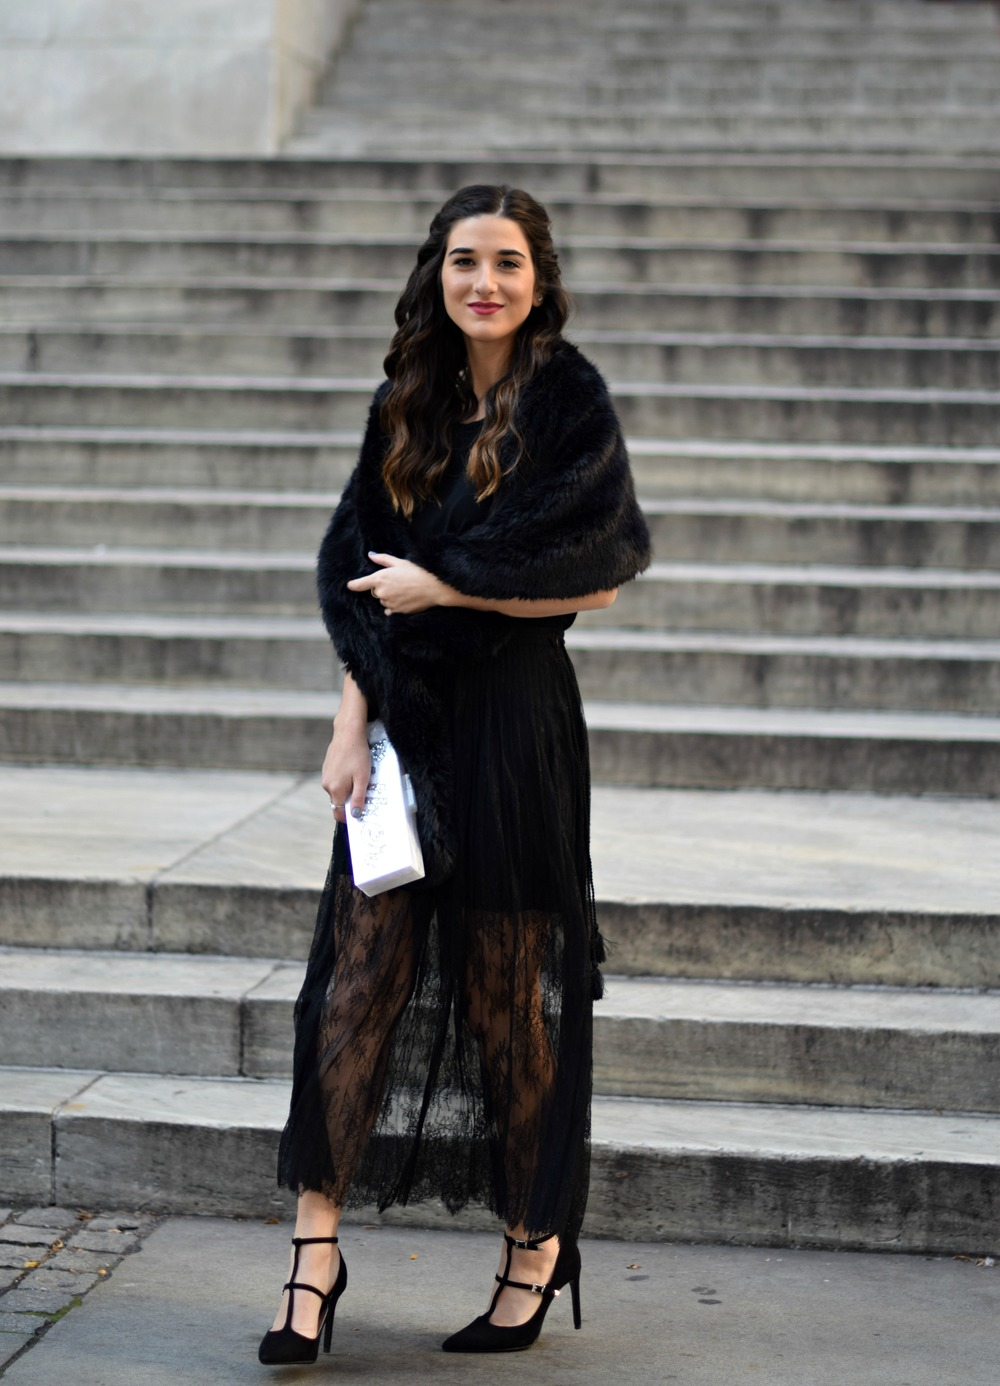 All Black Lace Skirt Fur Stole Louboutins & Love Fashion Blog Esther Santer NYC Street Style Blogger Outfit OOTD Classy Fancy Look Winter Wear Women Girls Monochrome Monogram Clutch Heels Zara Stiletto Beautiful Photoshoot Shoes Shop Inspo Inspiration.jpg